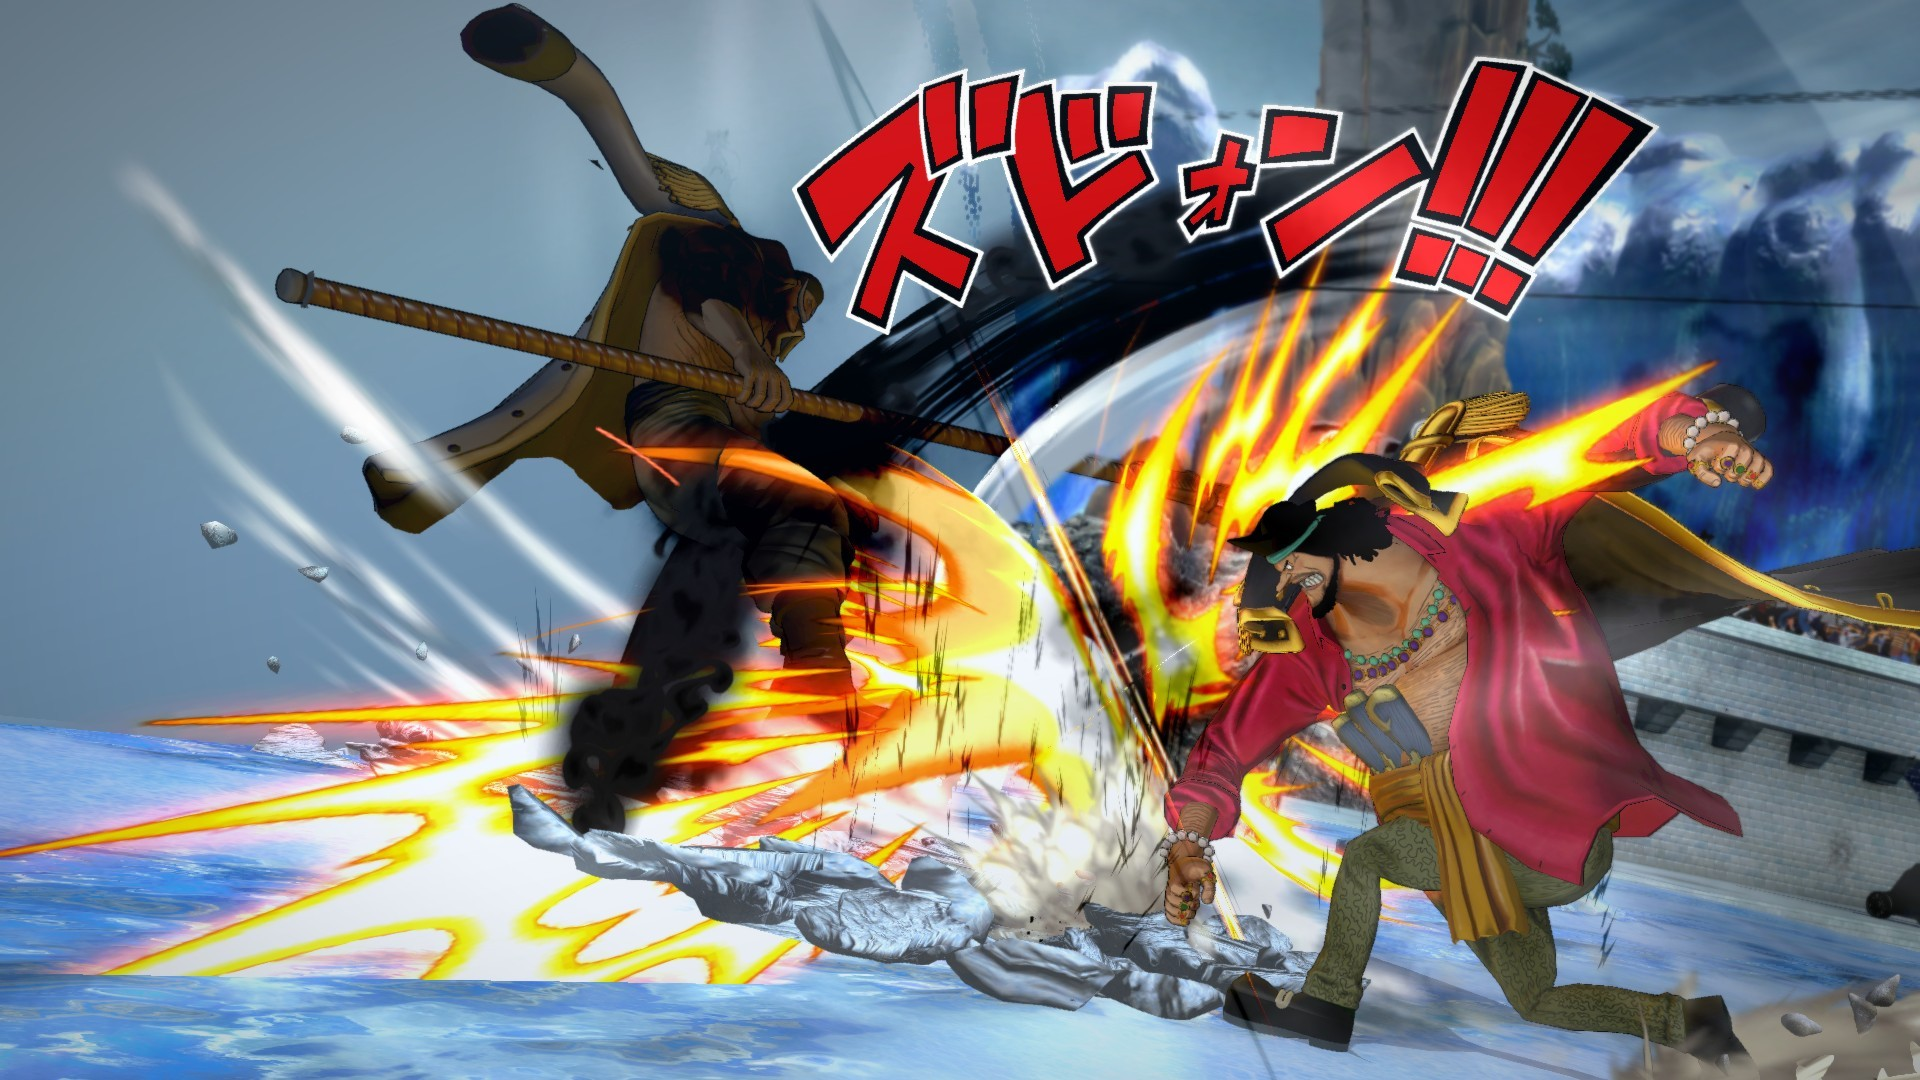 One Piece Burning Blood Gipfelschlacht Trailer Sony Ps4